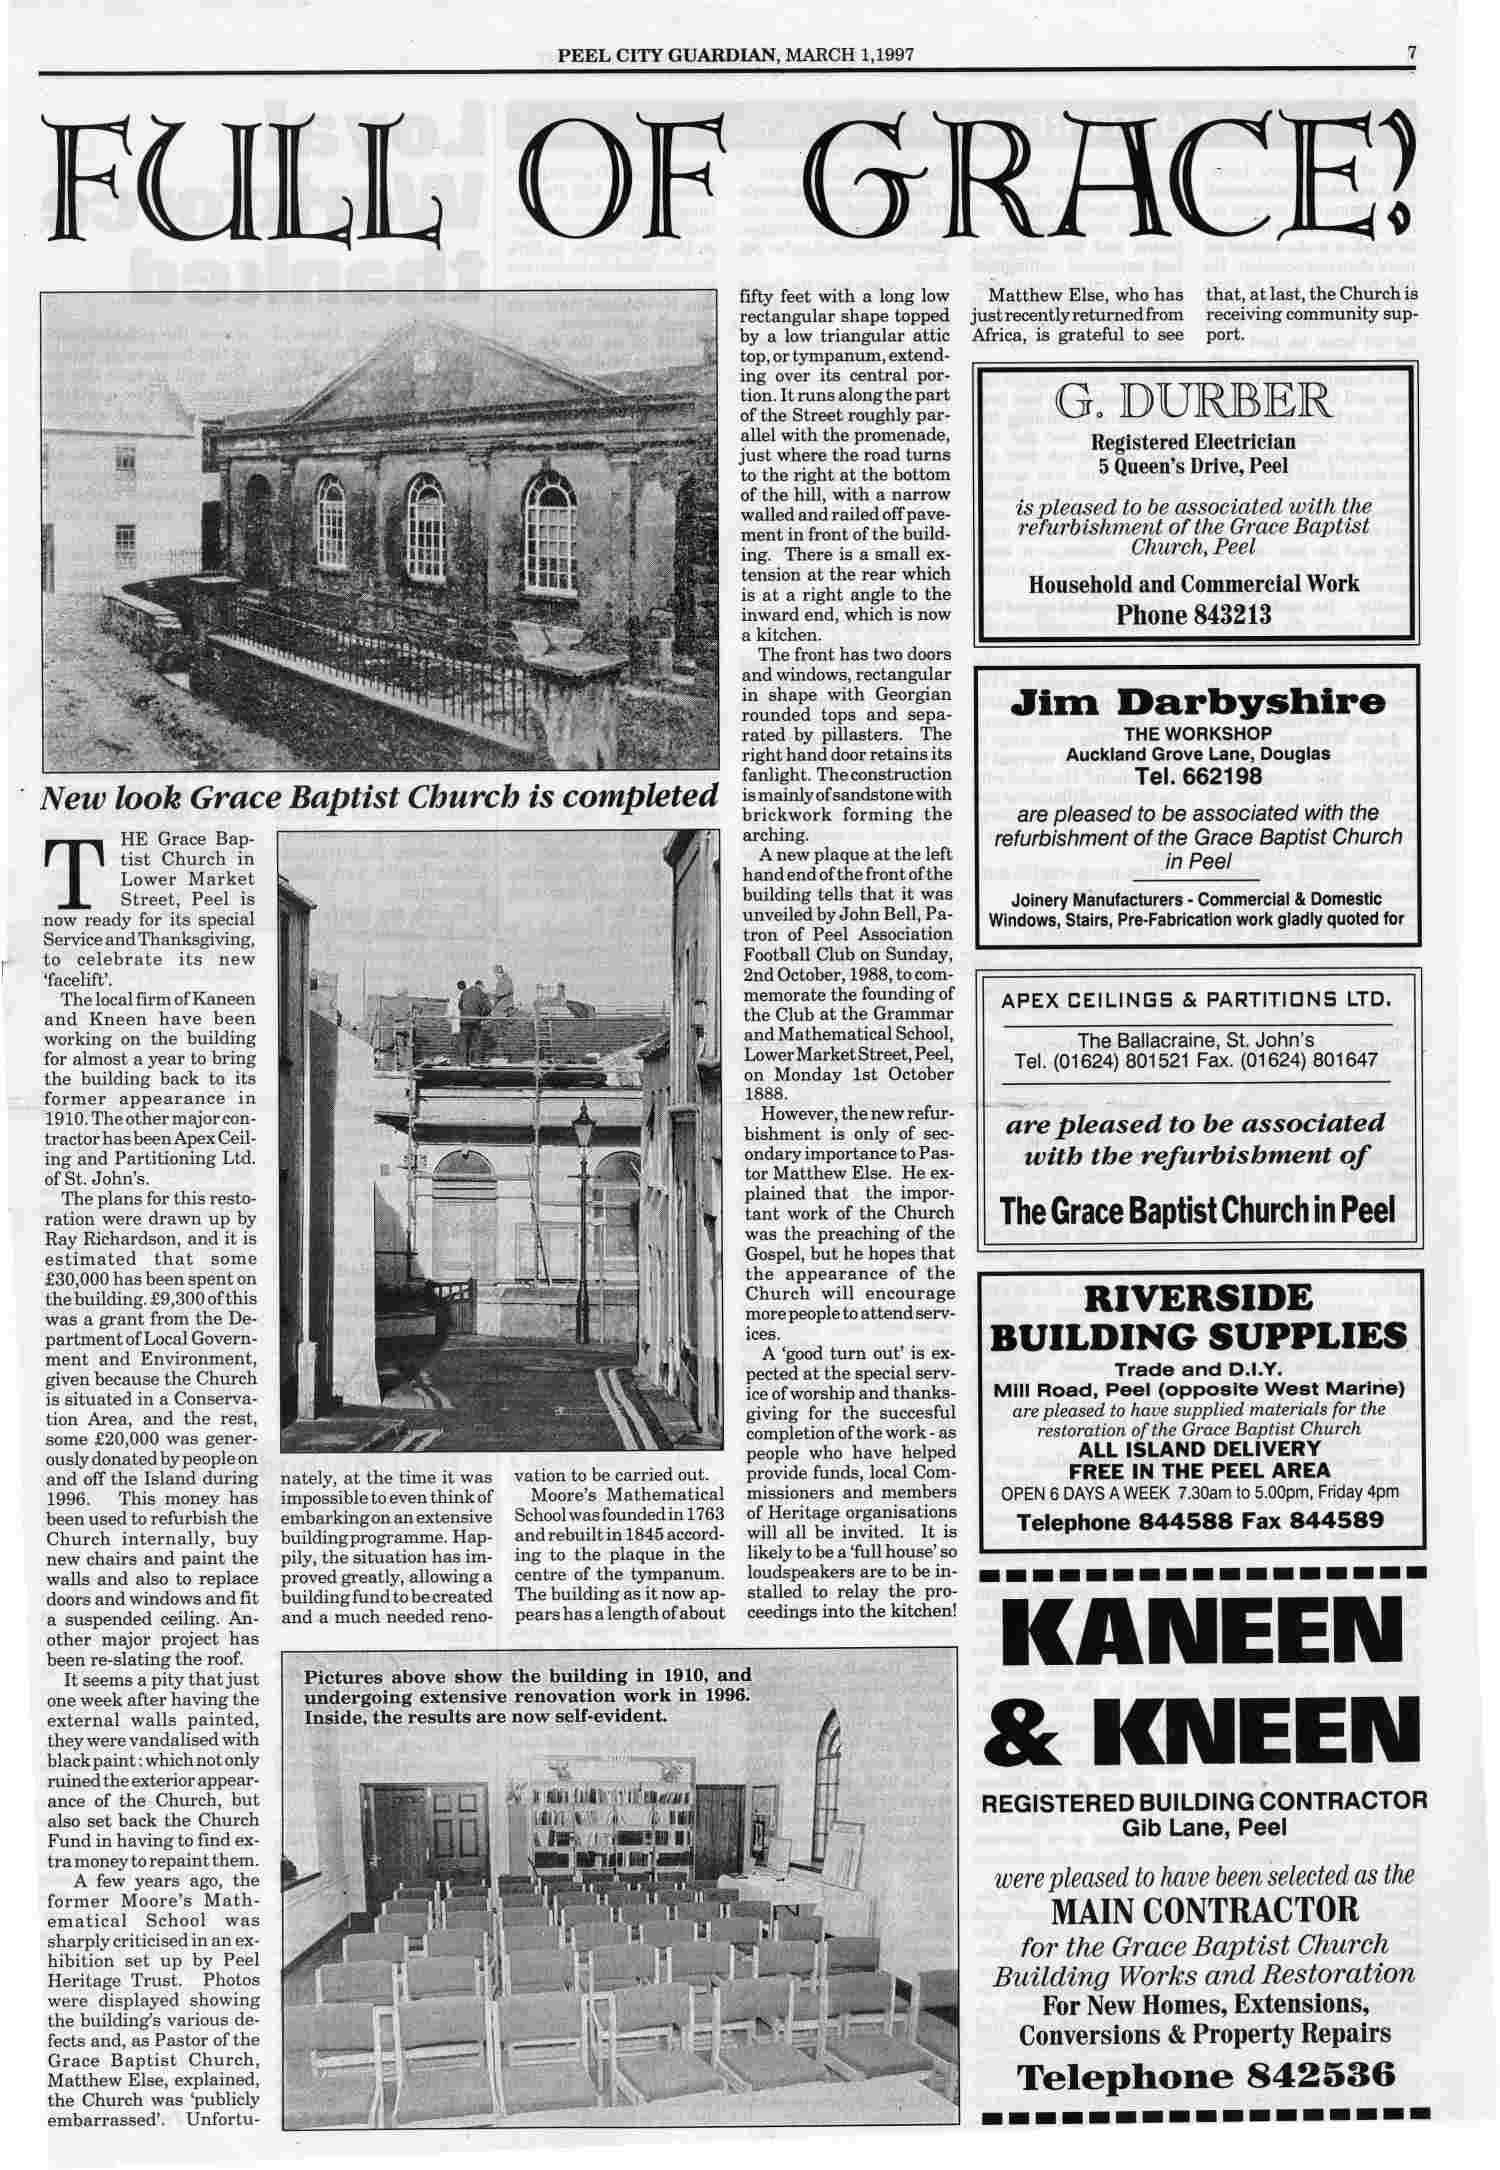 PEEL CITY GUARDIAN, MARCH 1,1997 THE Grace Baptist Church in Lower Market Street, Peel is now ready for its special Service and Thanksgiving, to celebrate its new 'facelift'. The local firm of Kaneen and Kneen have been working on the building for almost a year to bring the building back to its former appearance in 1910. The other major contractor has been Apex Ceiling and Partitioning Ltd. of St. John's. The plans for this restoration were drawn up by Ray Richardson, and it is estimated that some £30,000 has been spent on the building. £9,300 of this was a grant from the Department of Local Government and Environment, given because the Church is situated in a Conservation Area, and the rest, some £20,000 was generously donated by people on and off the Island during 1996. This money has been used to refurbish the Church internally, buy new chairs and paint the walls and also to replace doors and windows and fit a suspended ceiling. Another major project has been re-slating the roof. It seems a pity that just one week after having the external walls painted, they were vandalised with black paint: which not only ruined the exterior appearance of the Church, but also set back the Church Fund in having to find extra money to repaint them. A few years ago, the former Moore's Mathematical School was sharply criticised in an exhibition set up by Peel Heritage Trust. Photos were displayed showing the building's various defects and, as Pastor of the Grace Baptist Church, Matthew Else, explained, the Church was 'publicly embarrassed'. Unfortunately, at the time it was impossible to even think of embarking on an extensive building programme. Happily, the situation has improved greatly, allowing a building fund to be created and a much needed renovation to be carried out.  Moore's Mathematical School was founded in 1763 and rebuilt in 1845 according to the plaque in the centre of the tympanum. The building as it now appears has a length of about fifty feet with a long low rectangular shape topped by a low triangular attic top, or tympanum, extending over its central portion. It runs along the part of the Street roughly parallel with the promenade, just where the road turns to the right at the bottom of the hill, with a narrow walled and railed off pavement in front of the building. There is a small extension at the rear which is at a right angle to the inward end, which is now a kitchen. The front has two doors and windows, rectangular in shape with Georgian rounded tops and separated by pillasters. The right hand door retains its fanlight. The construction is mainly of sandstone with brickwork forming the arching. A new plaque at the left hand end of the front of the building tells that it was unveiled by John Bell, Patron of Peel Association Football Club on Sunday, 2nd October, 1988, to commemorate the founding of the Club at the Grammar and Mathematical School, Lower Market Street, Peel, on Monday 1st October 1888. However, the new refurbishment is only of secondary importance to Pastor Matthew Else. He explained that the important work of the Church was the preaching of the Gospel, but he hopes that the appearance of the Church will encourage more people to attend services. A 'good turn out' is expected at the special service of worship and thanksgiving for the successful completion of the work - as people who have helped provide funds, local Commissioners and members of Heritage organisations will all be invited. It is likely to be a 'full house' so loudspeakers are to be installed to relay the proceedings into the kitchen! Matthew Else, who has just returned from Africa, is grateful that, at last, the Church is receiving community support.